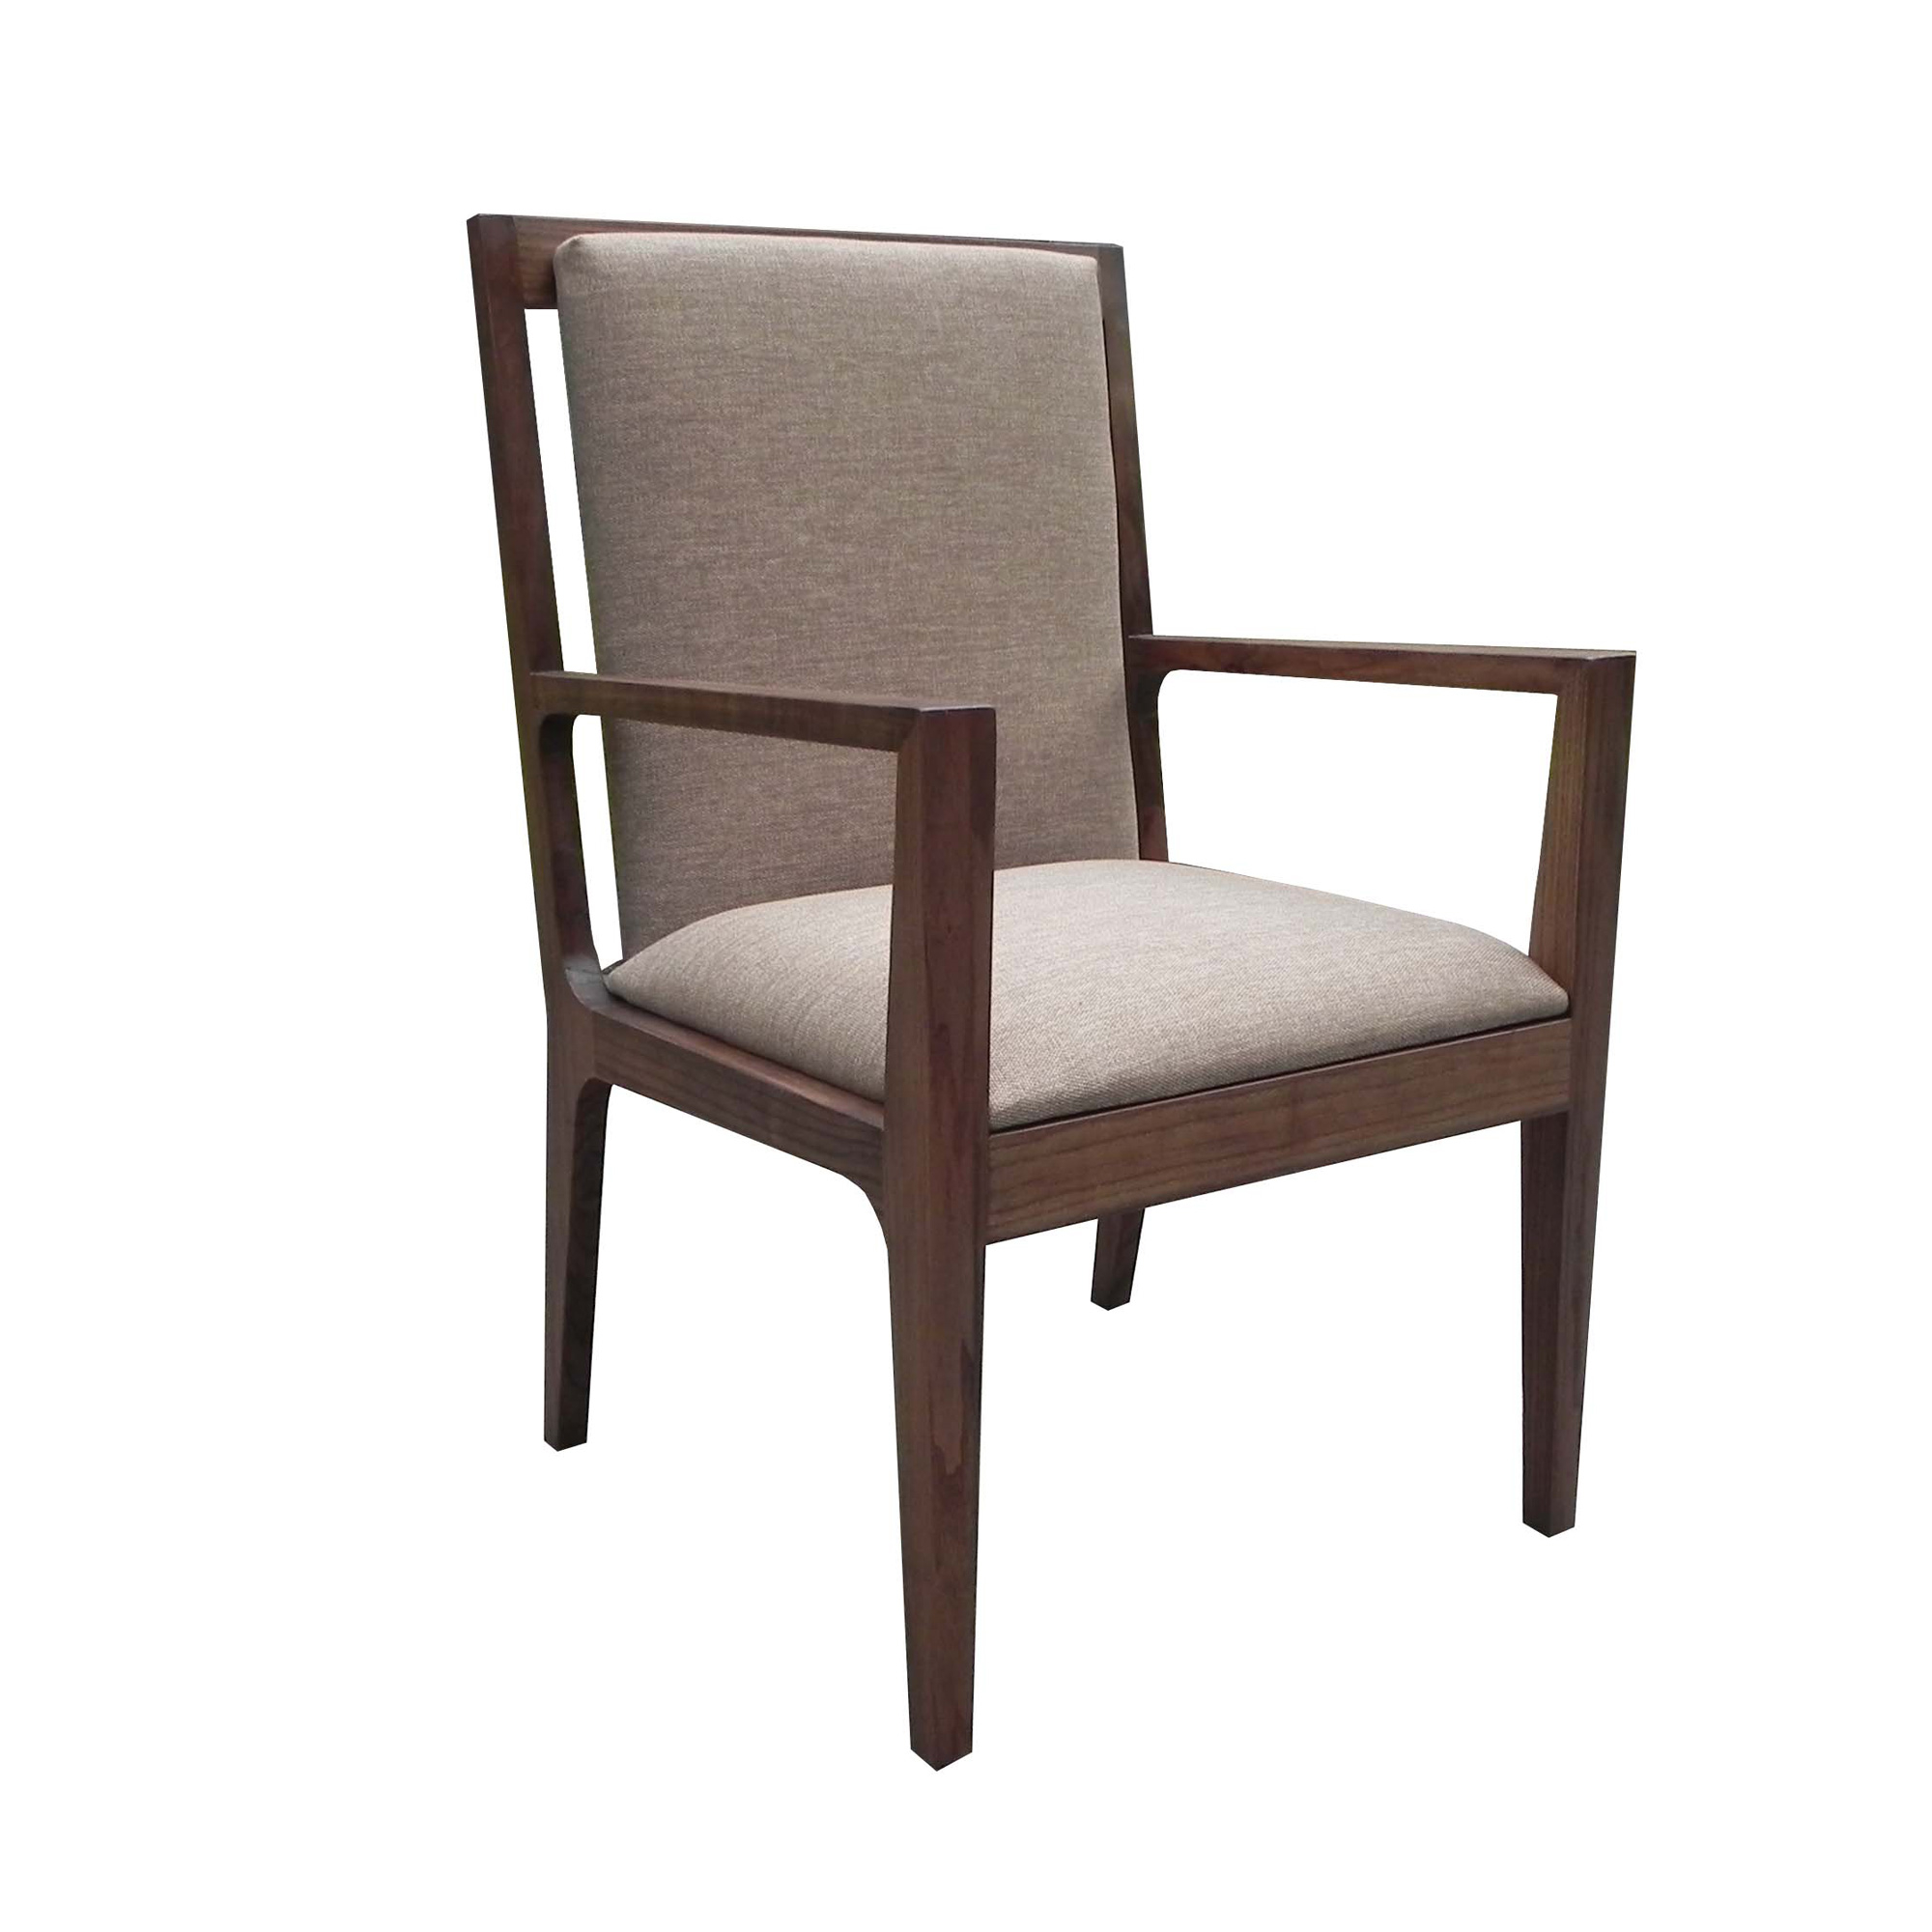 Maria Yee Papyrus Upholstered Back Armchair